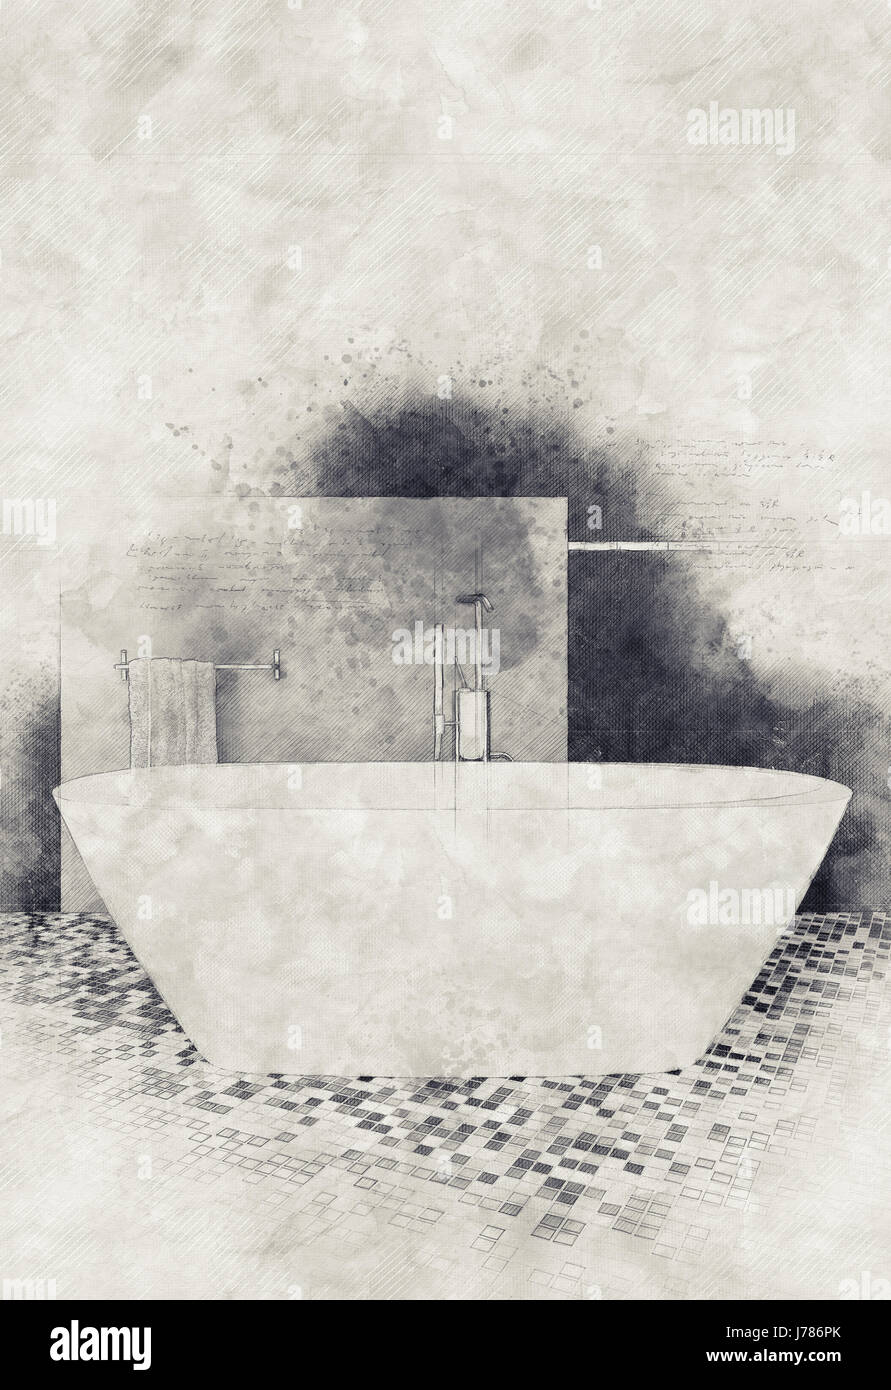 Textured Water Color Paint And Sketch Effect Modern Bathroom Interior With Mosaic Floor Oval White Bathtub Copy Space